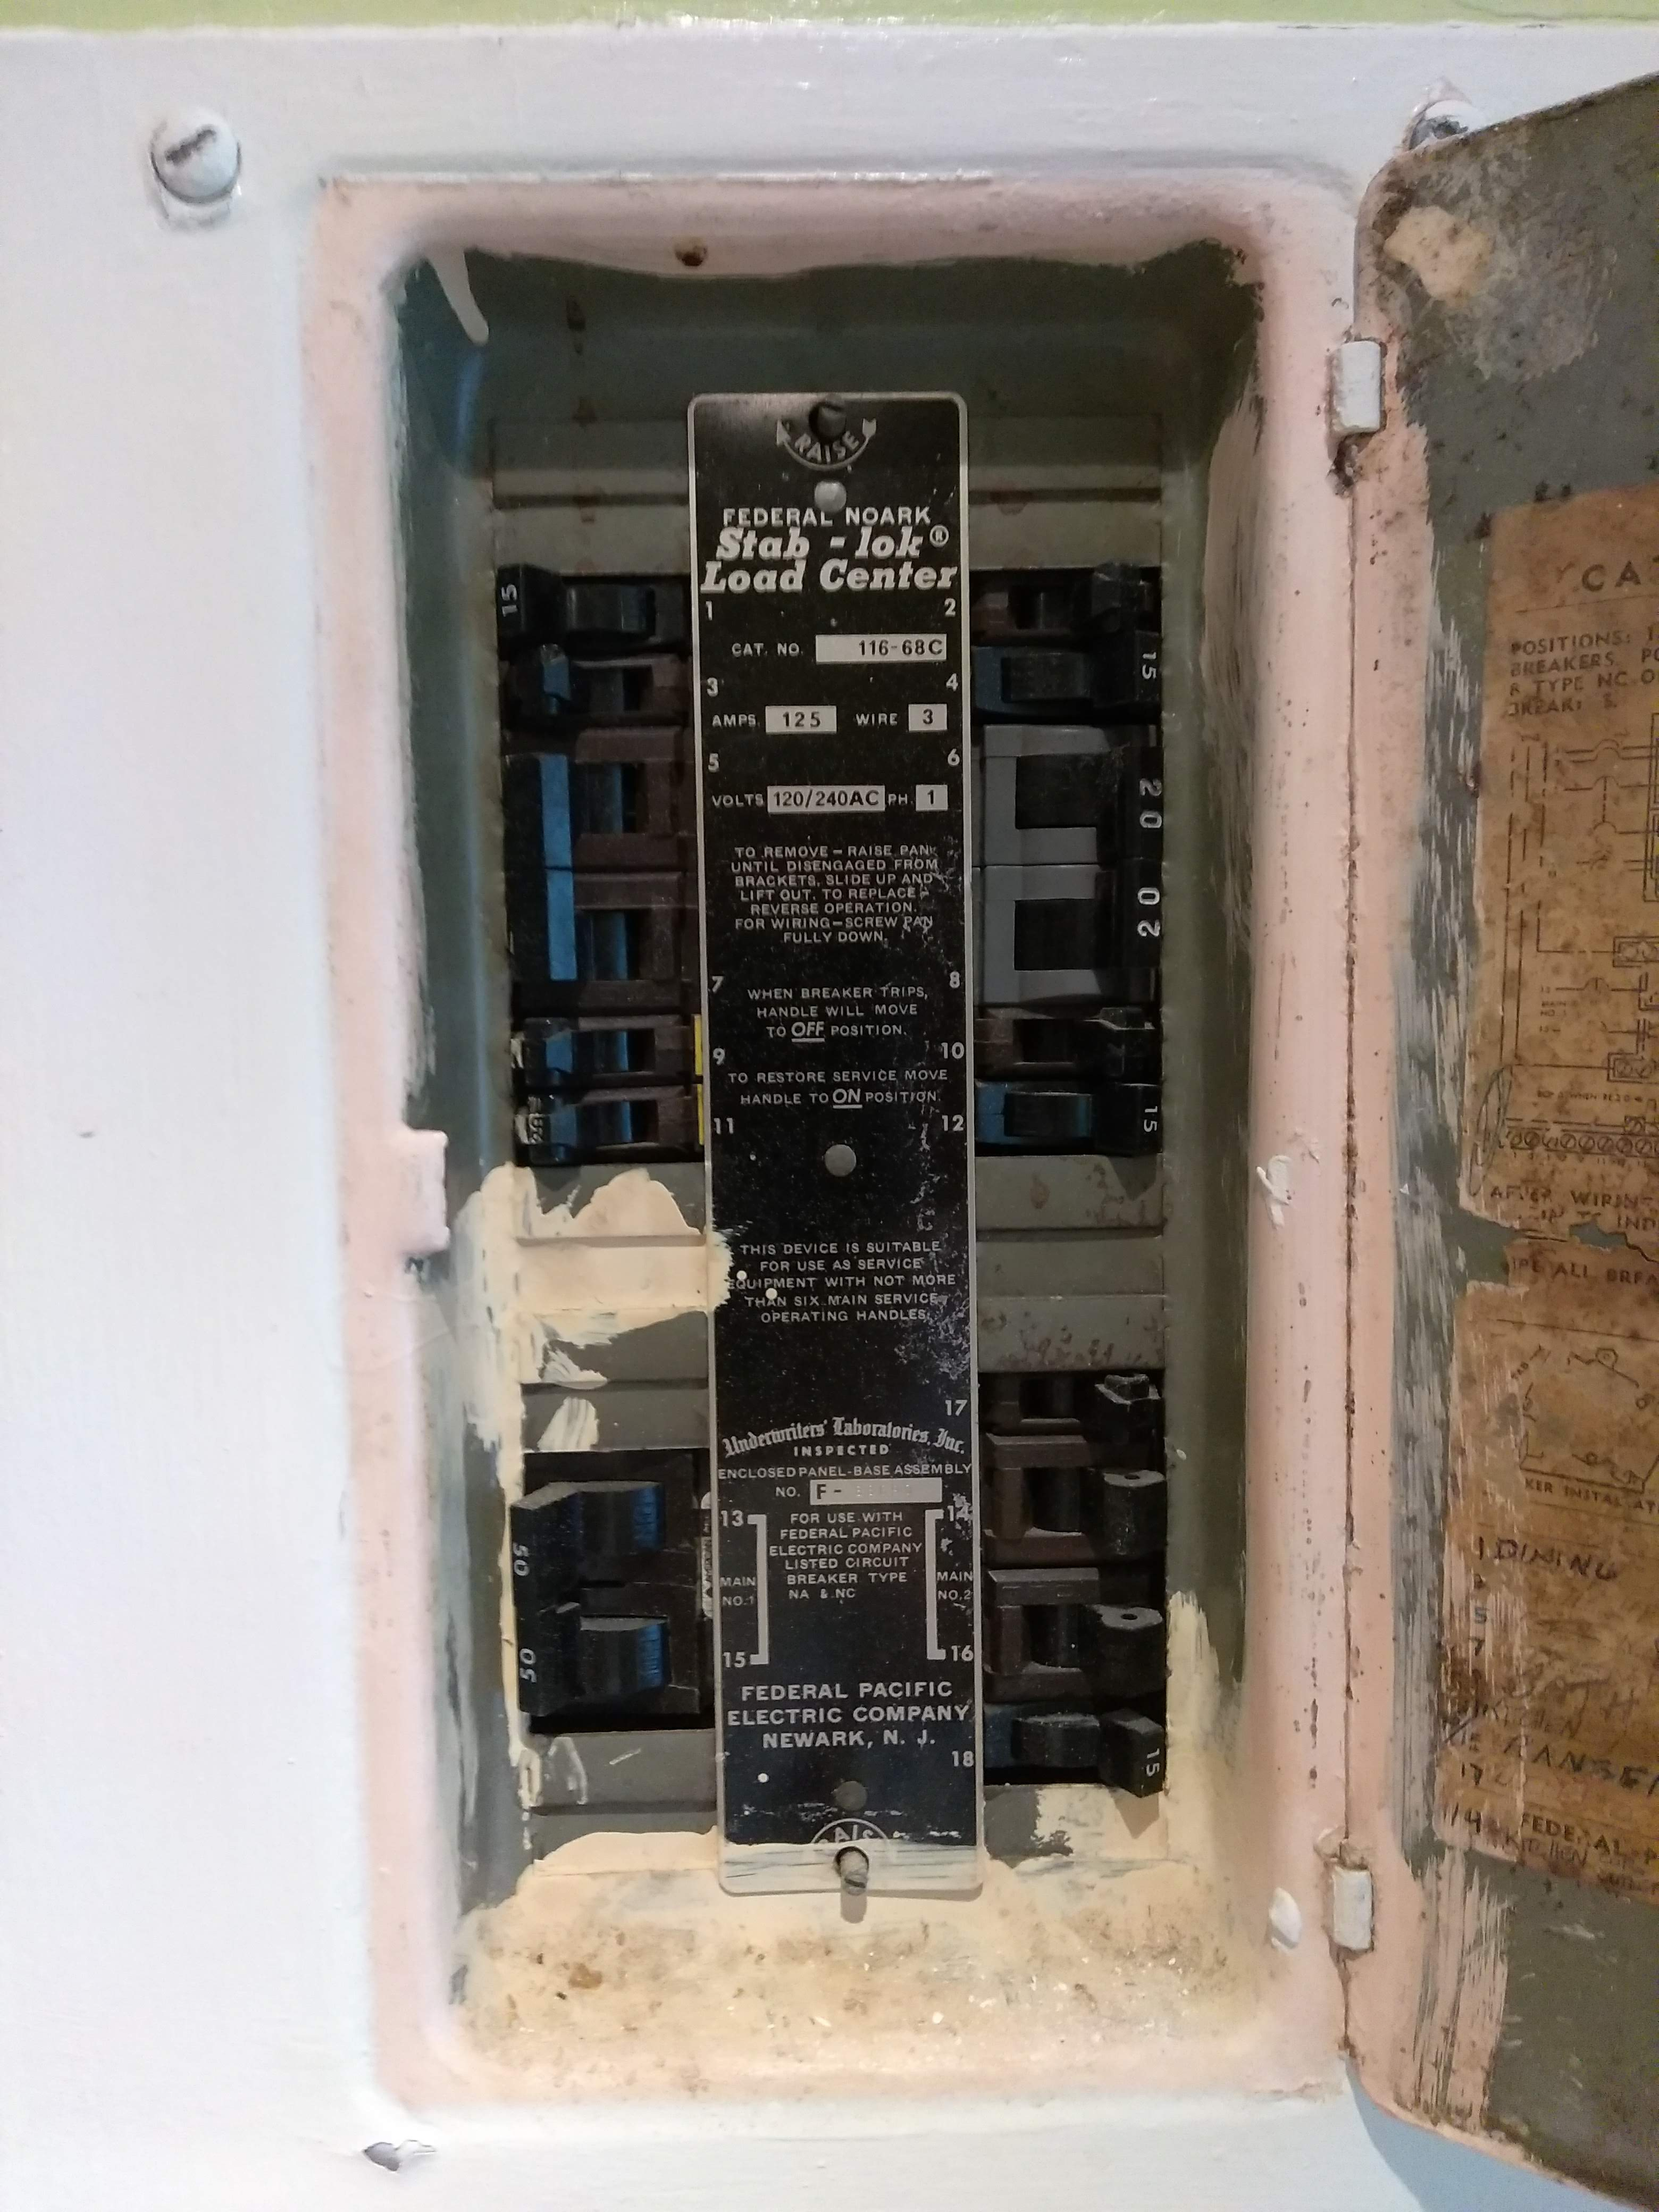 If you own a FPE breaker boxes and it has never tripped, you may have a  serious problem that could lead to a dangerous and life threatening fire.